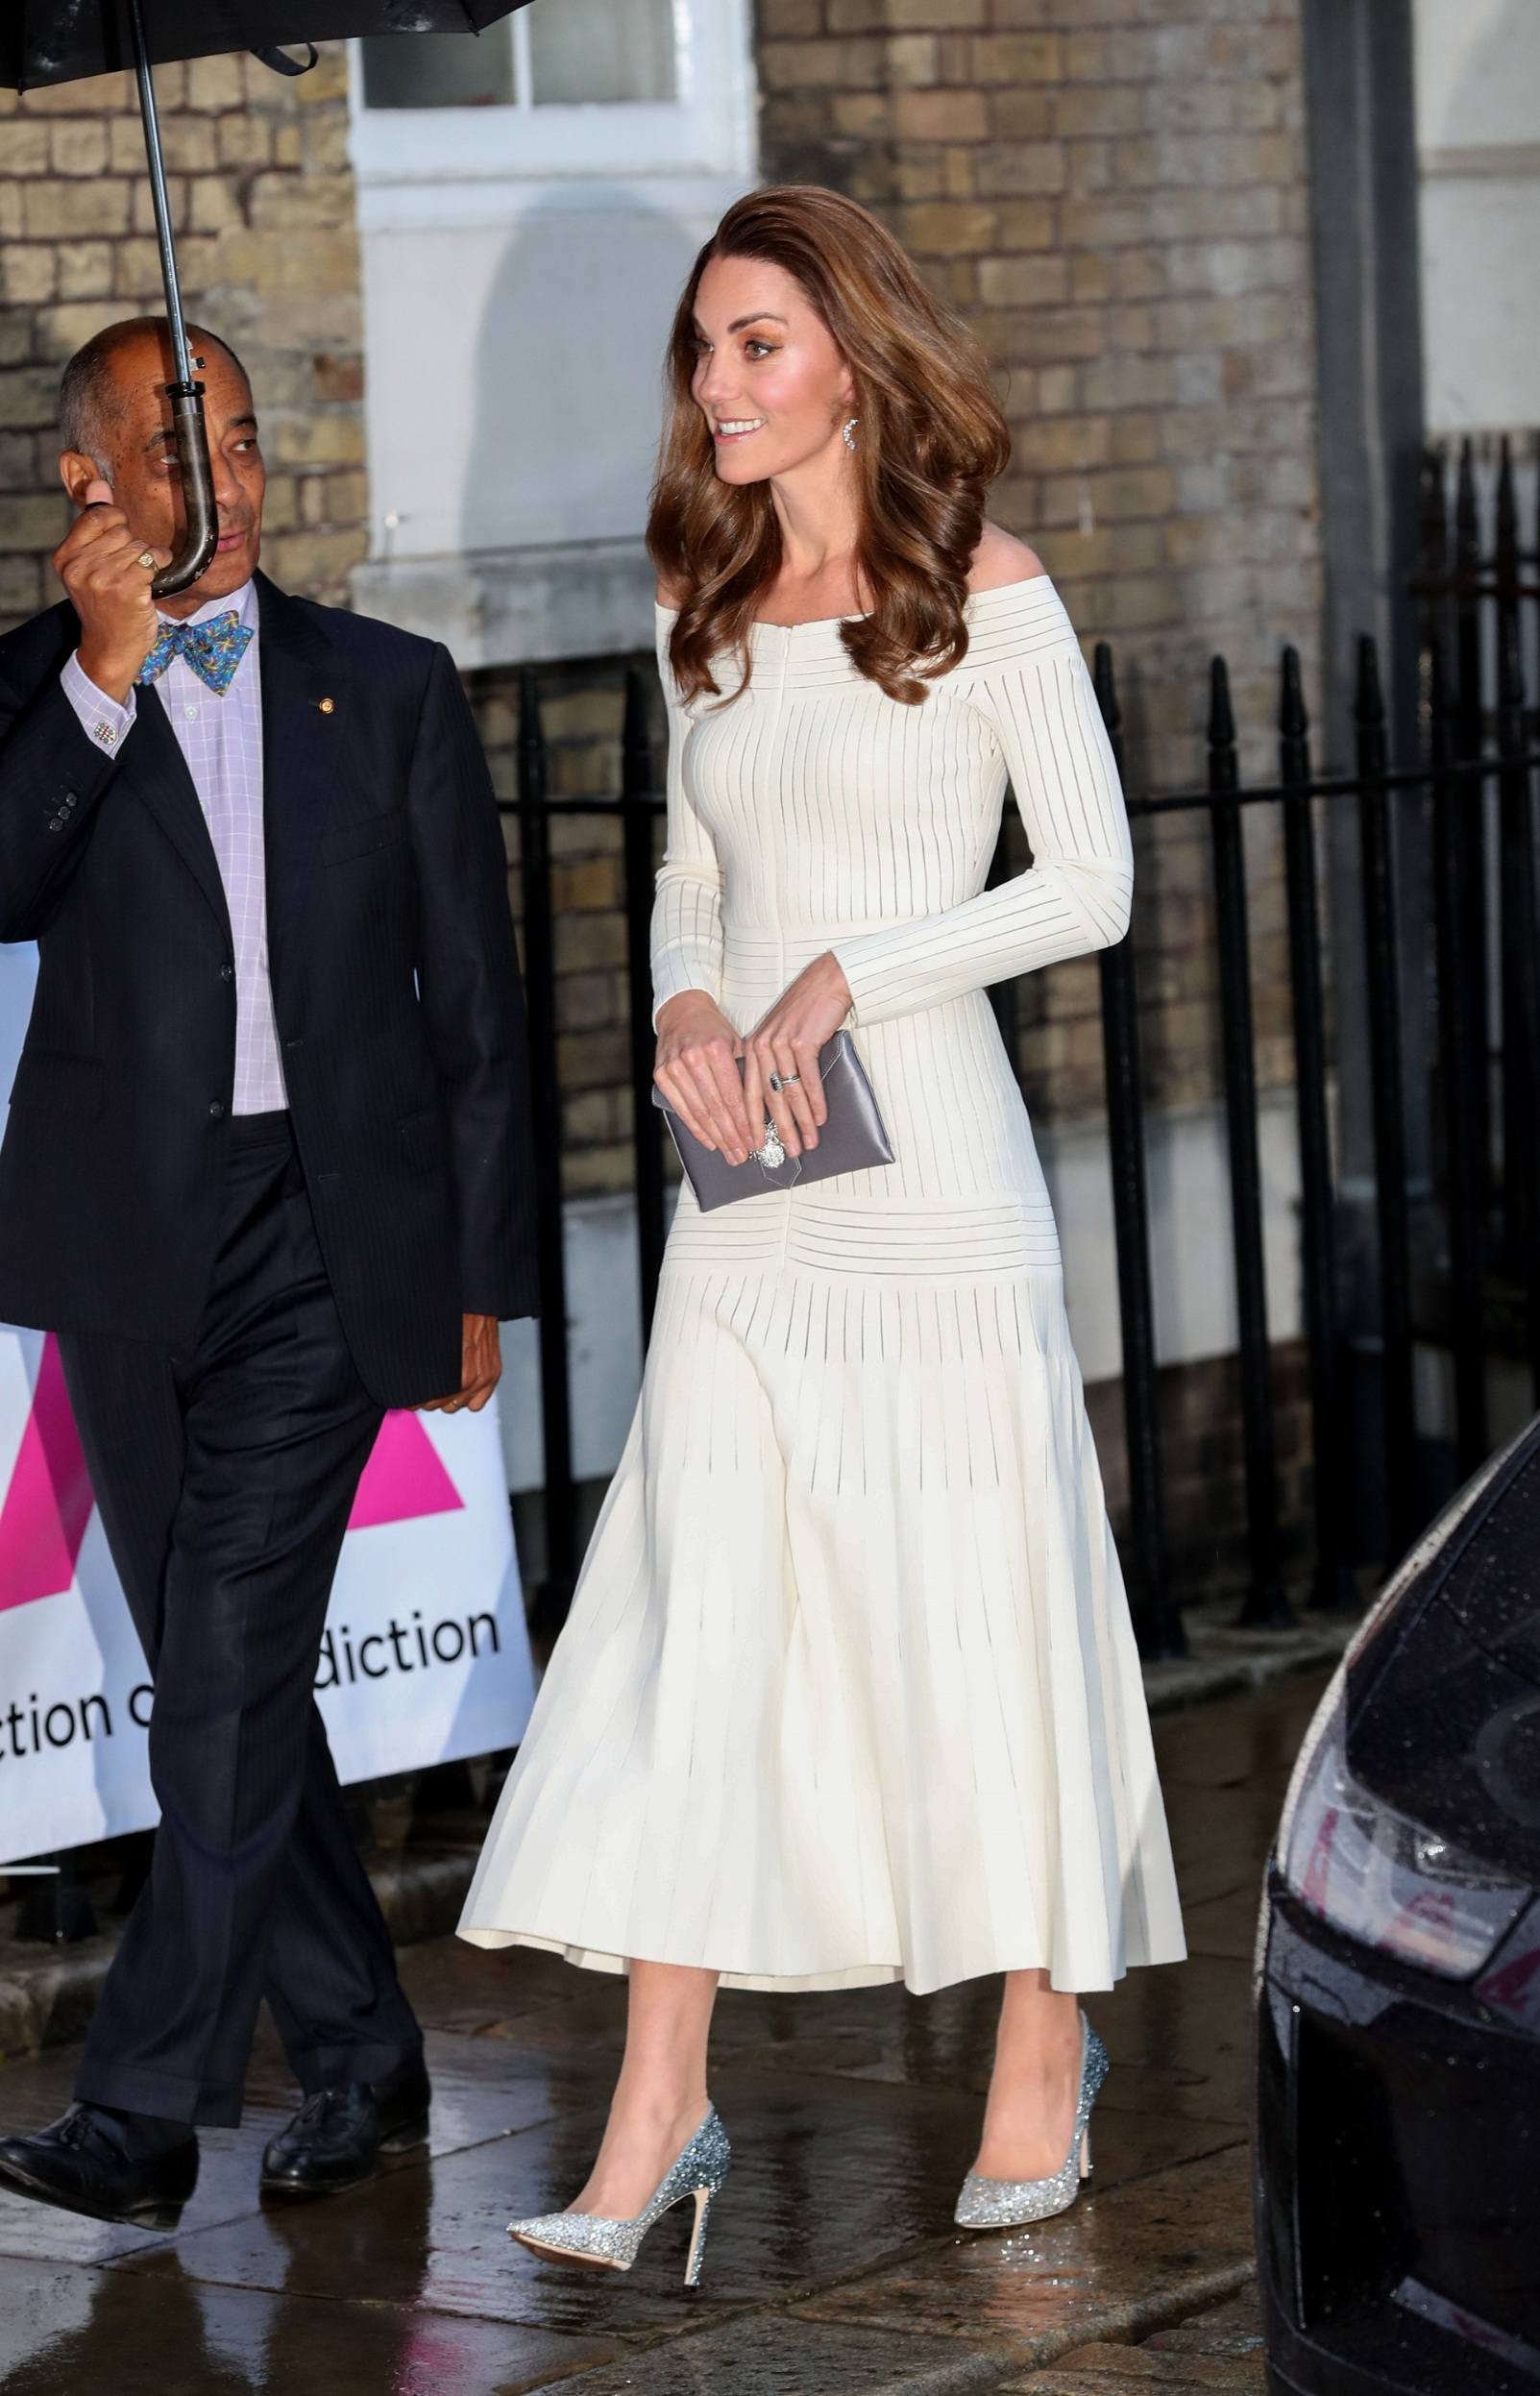 LONDON, ENGLAND - JUNE 12: Catherine, Duchess of Cambridge attends the first annual gala dinner in recognition of Addiction Awareness Week at the Phillips Gallery on June 12, 2019 in London, England. HRH is Patron of Action on Addiction.  (Photo by Chris Jackson/Getty Images)